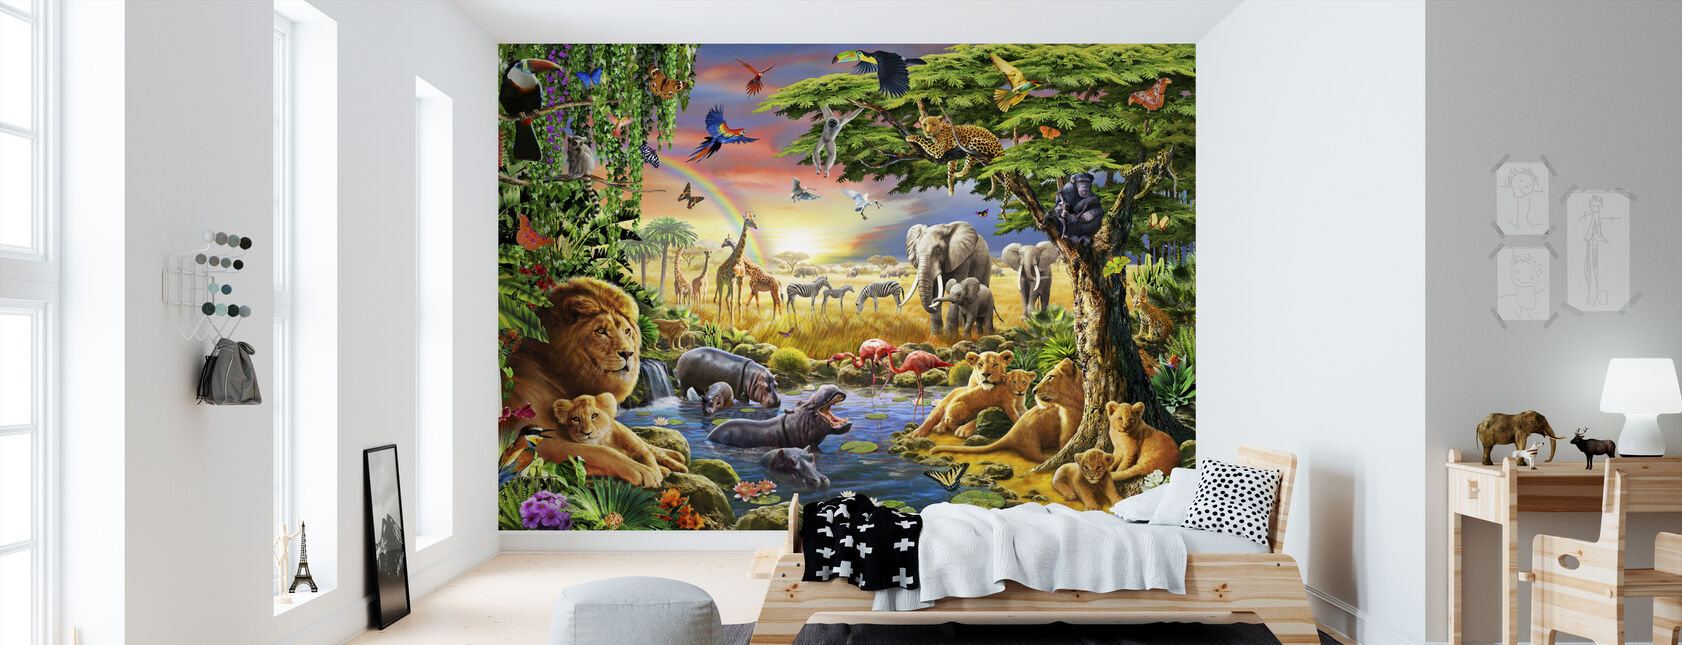 - Waterhole. - Yeah - Wallpaper - Kids Room